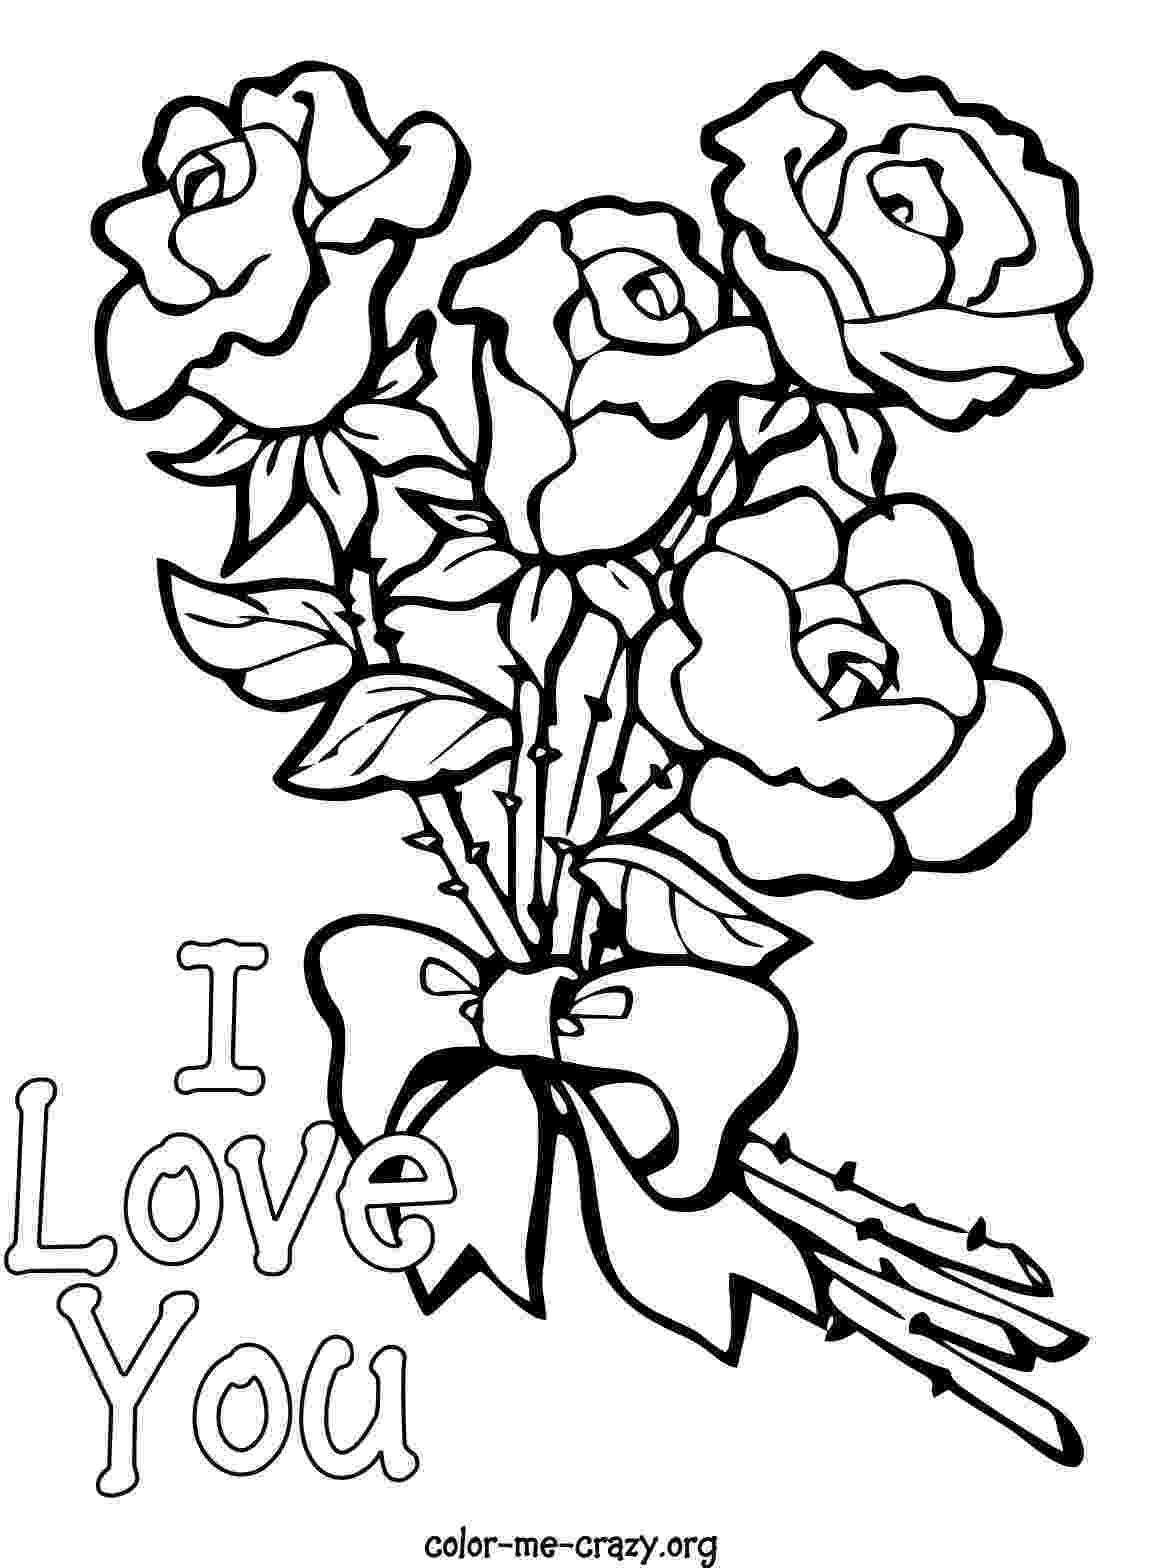 valentines day coloring sheets colormecrazyorg valentine coloring pages coloring sheets valentines day